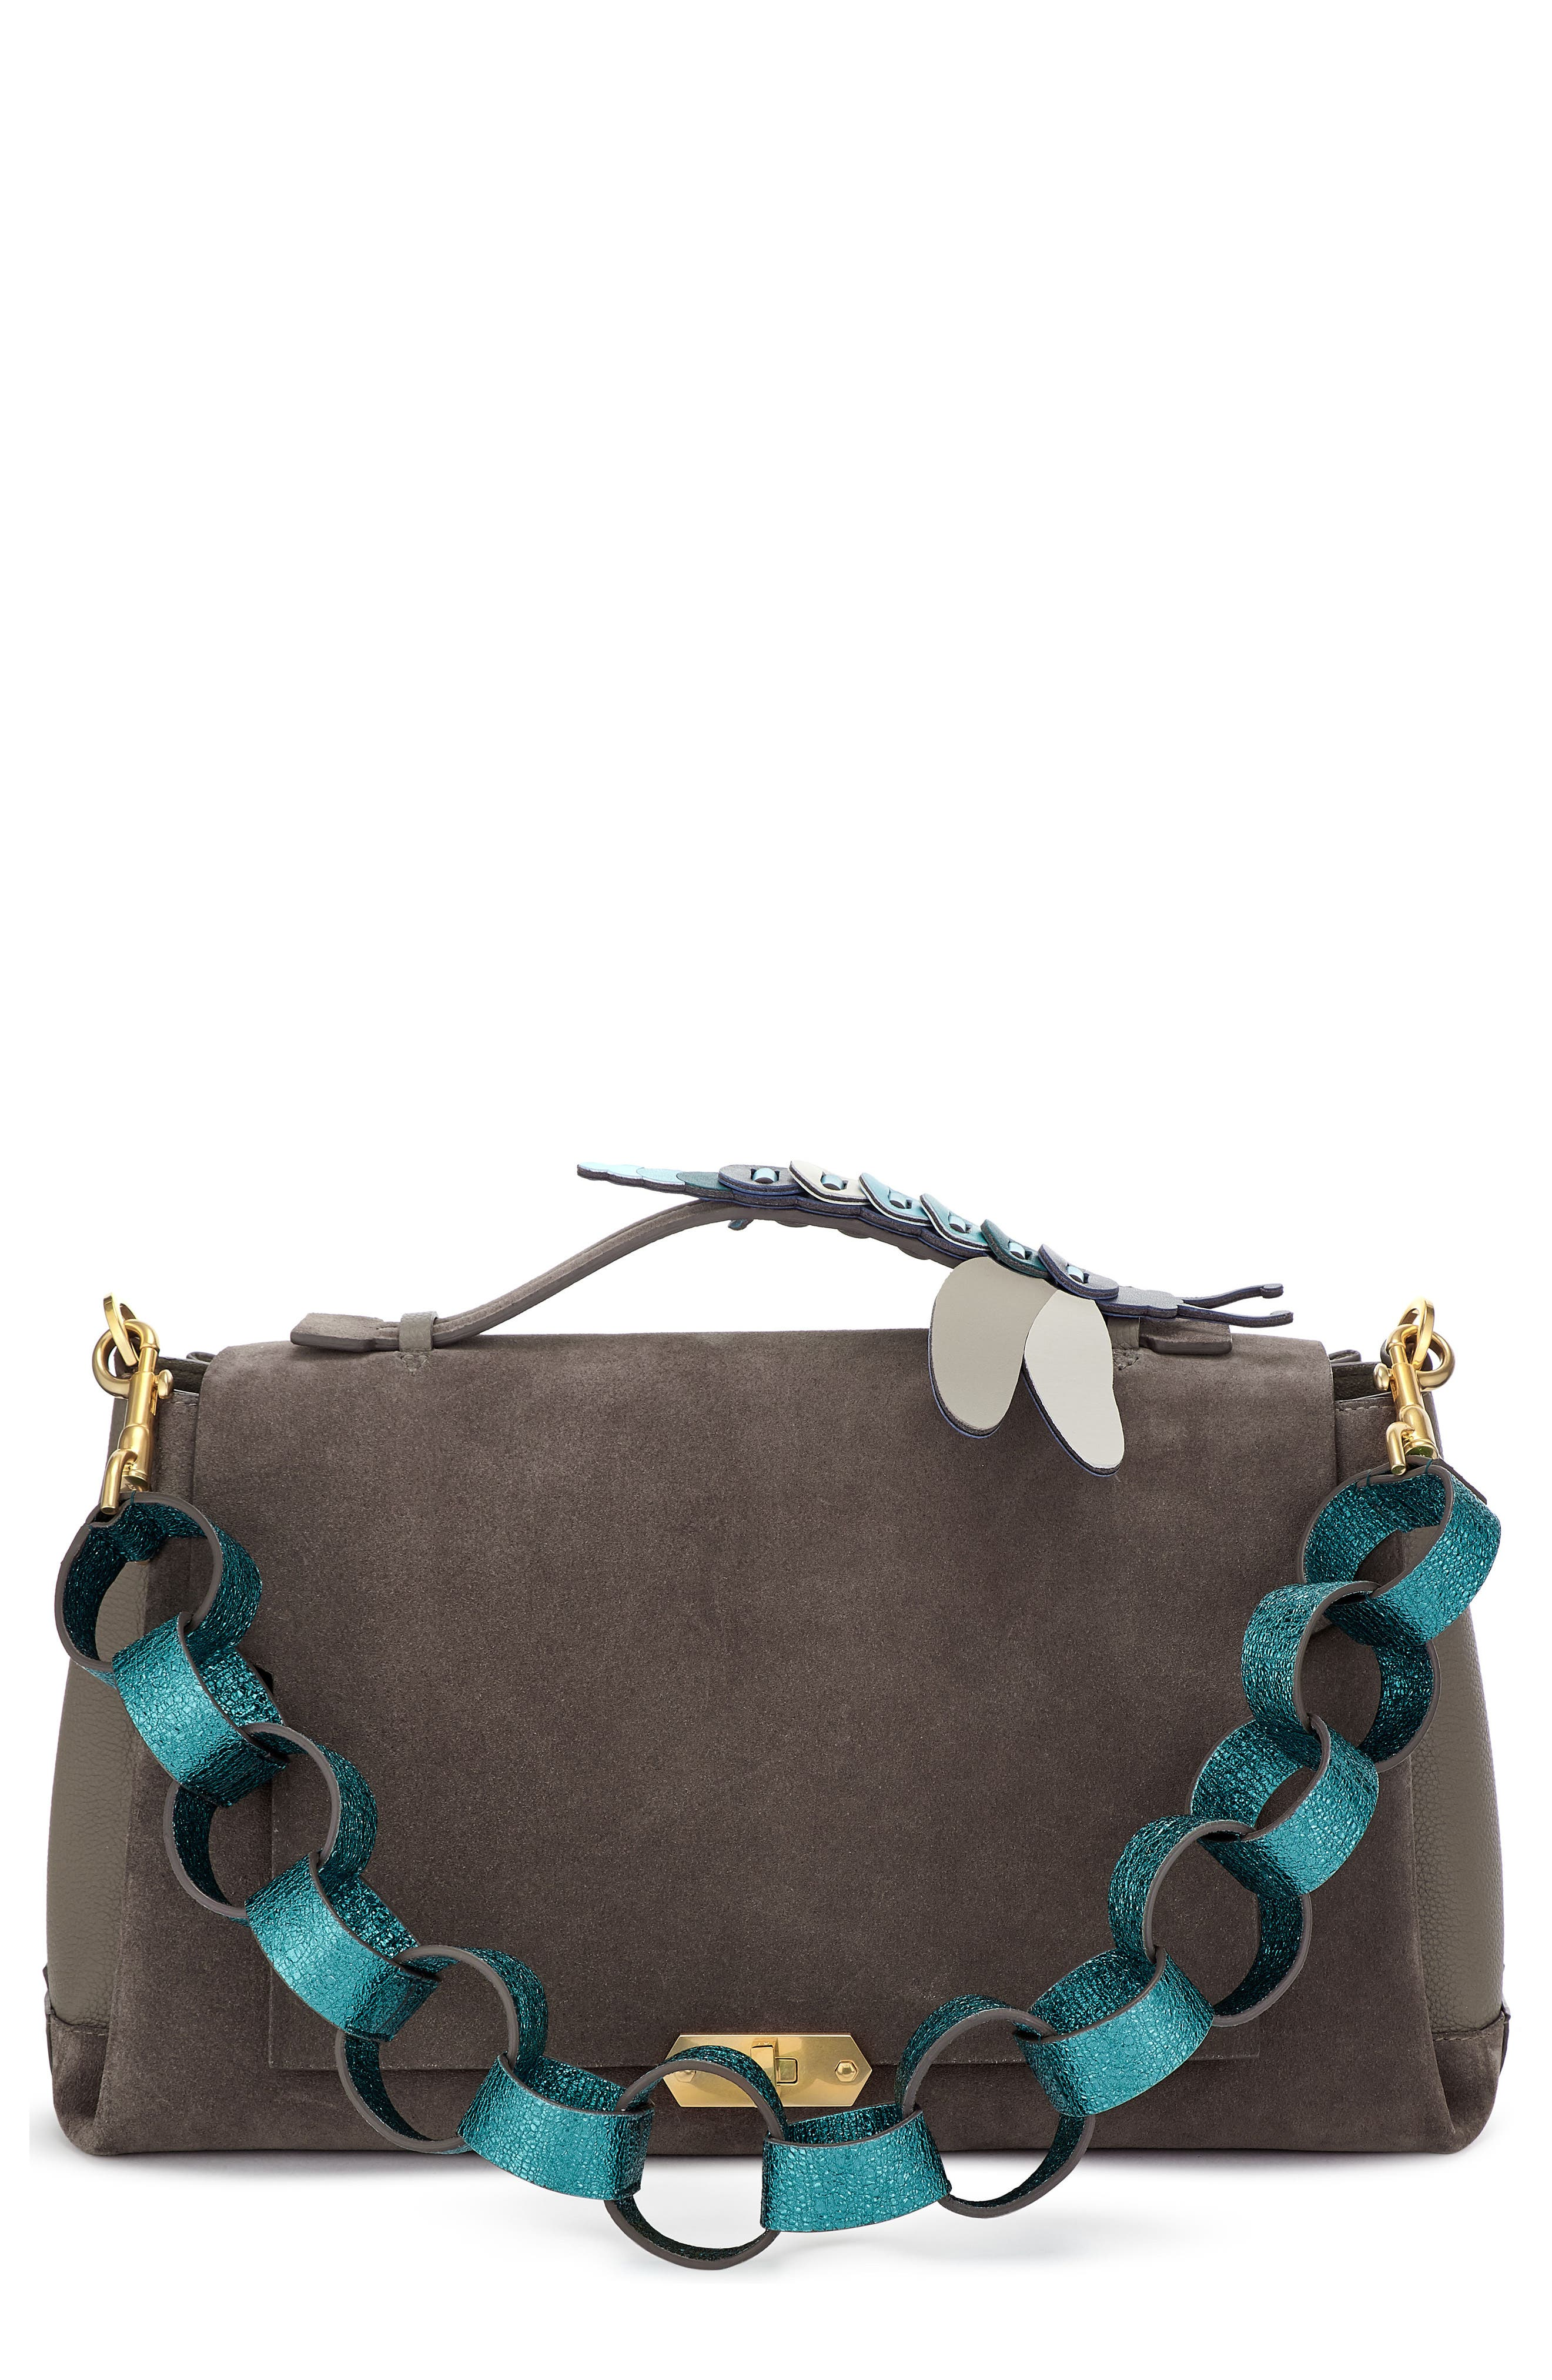 Alternate Image 1 Selected - Anya Hindmarch Bathurst Dragonfly Detail Leather & Suede Satchel